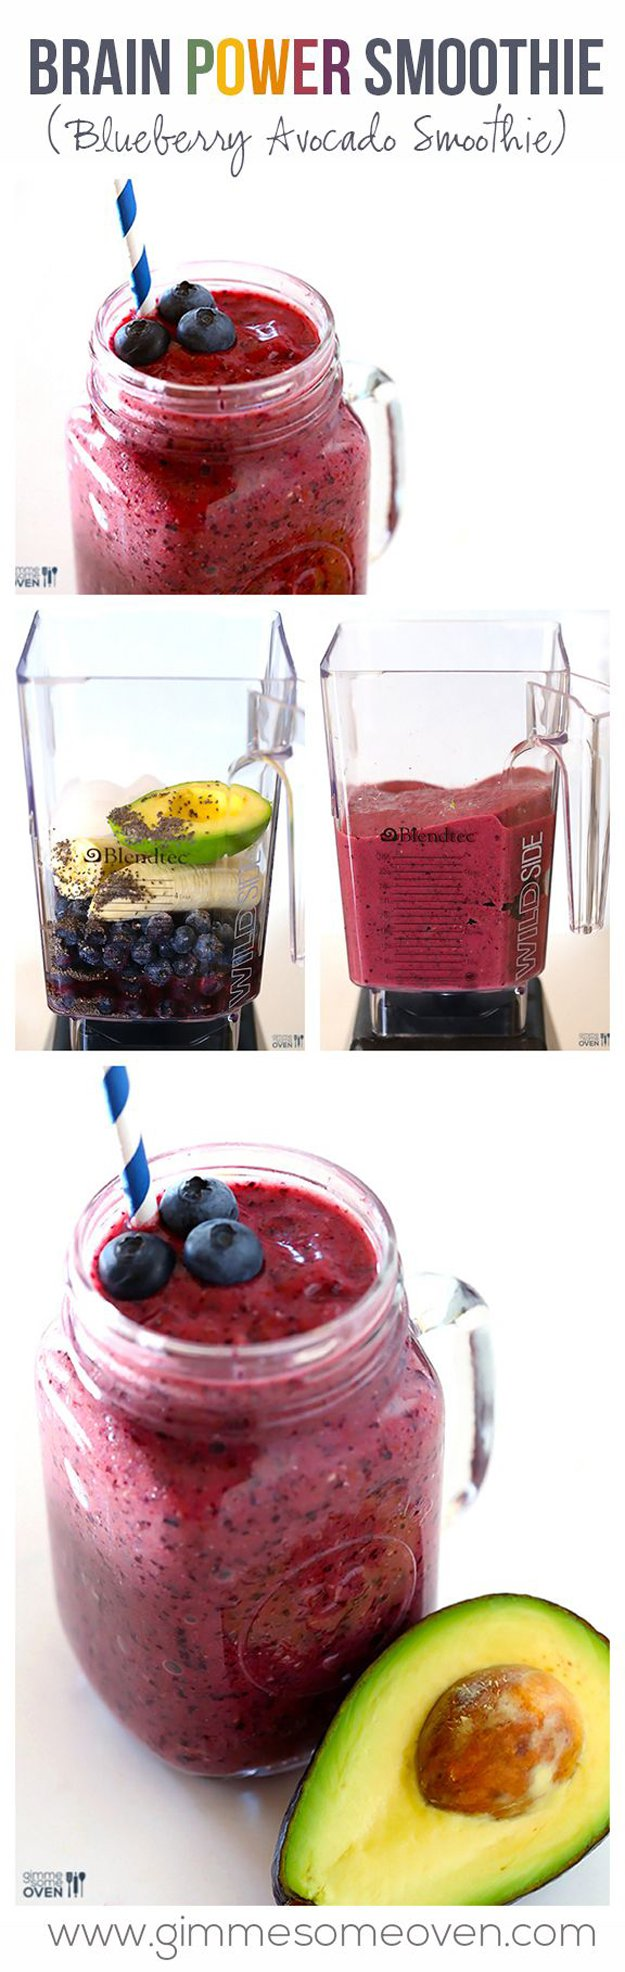 smoothie26